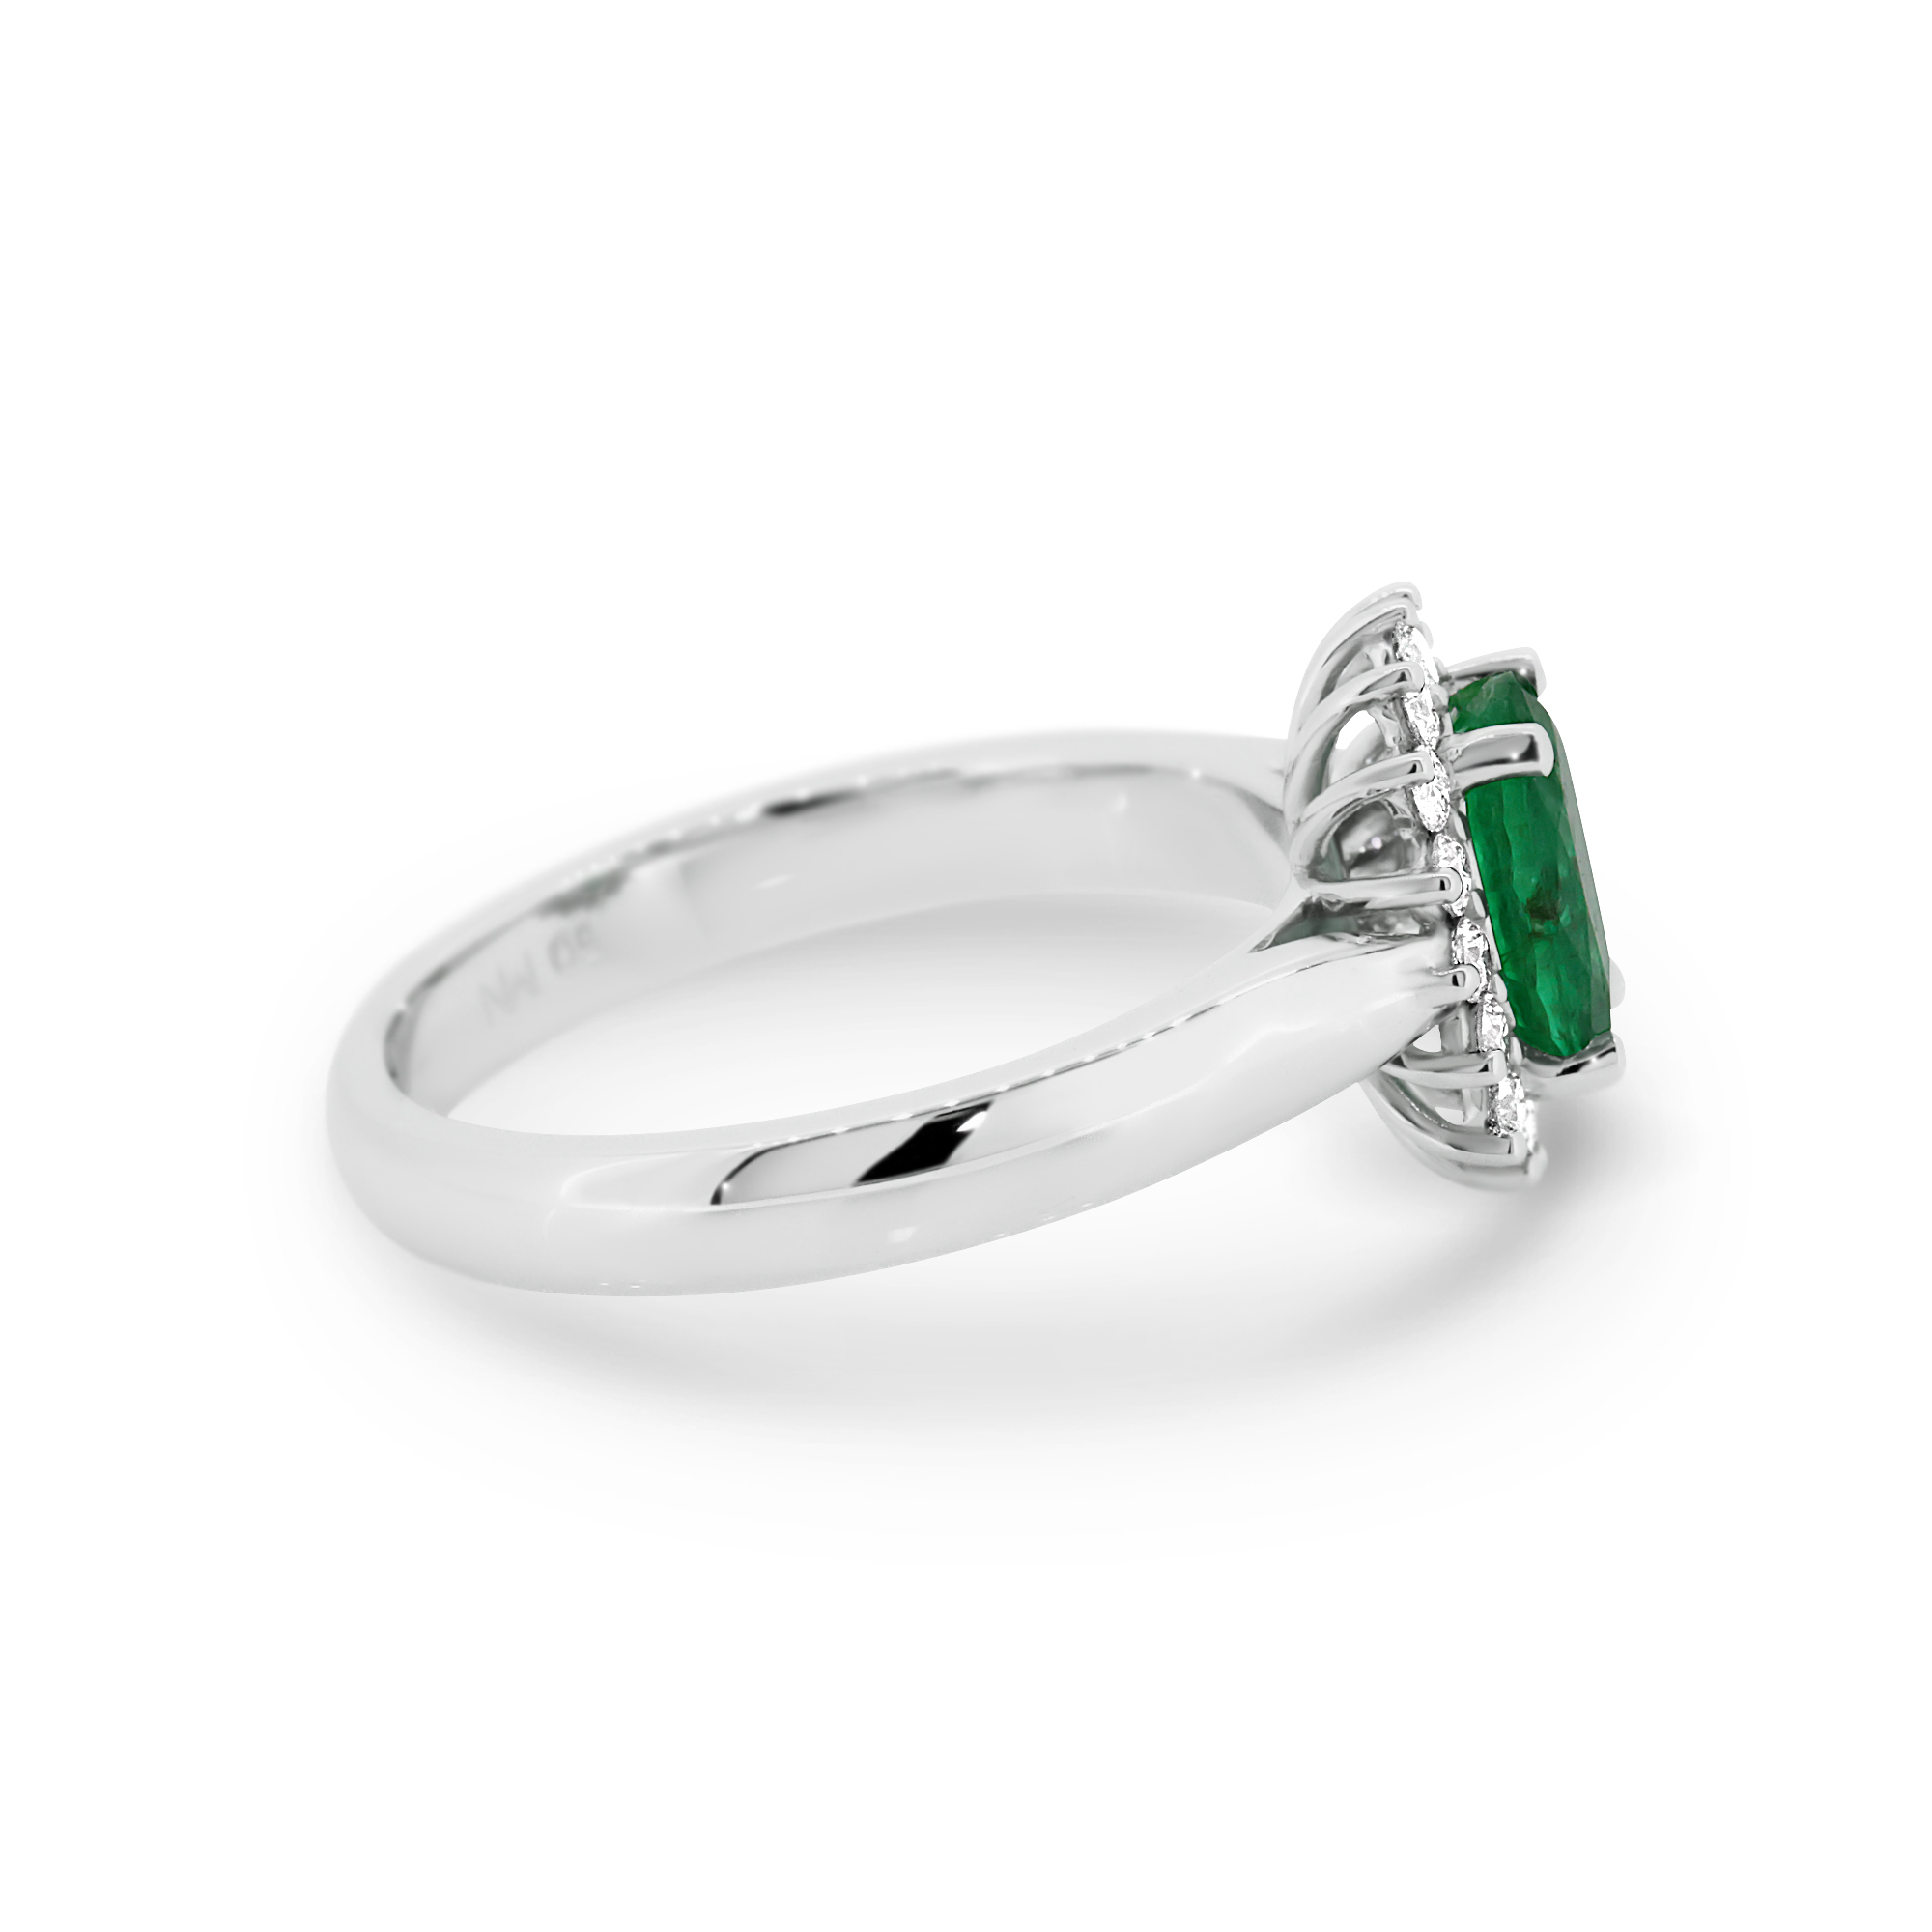 r engagement emerald a rings pirouette cut ring preview